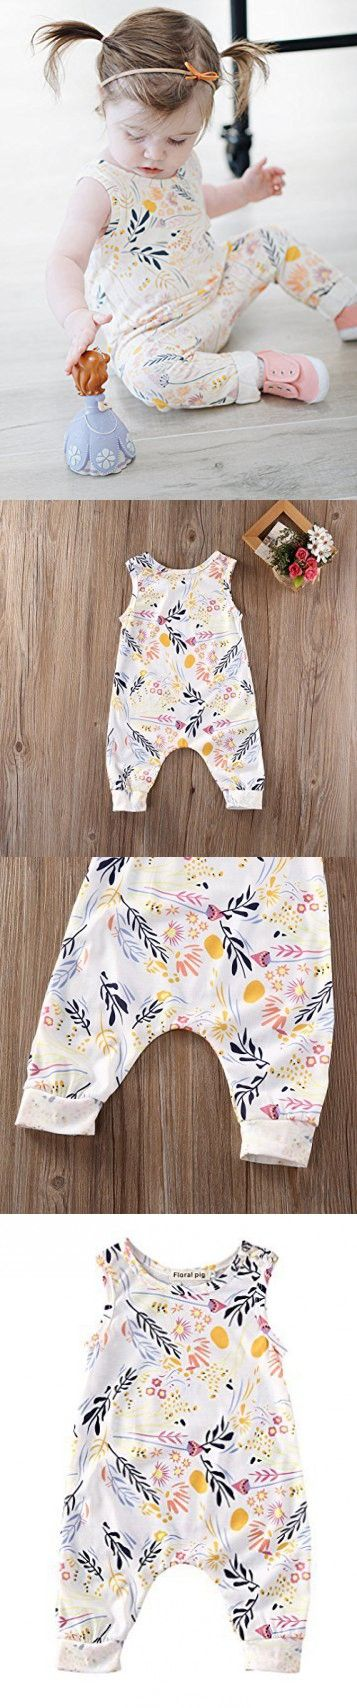 Baby Girl Sleeveless Sweet Floral Jumpers Rompers Bodysuit Playsuit Outfits (6-12 Month)